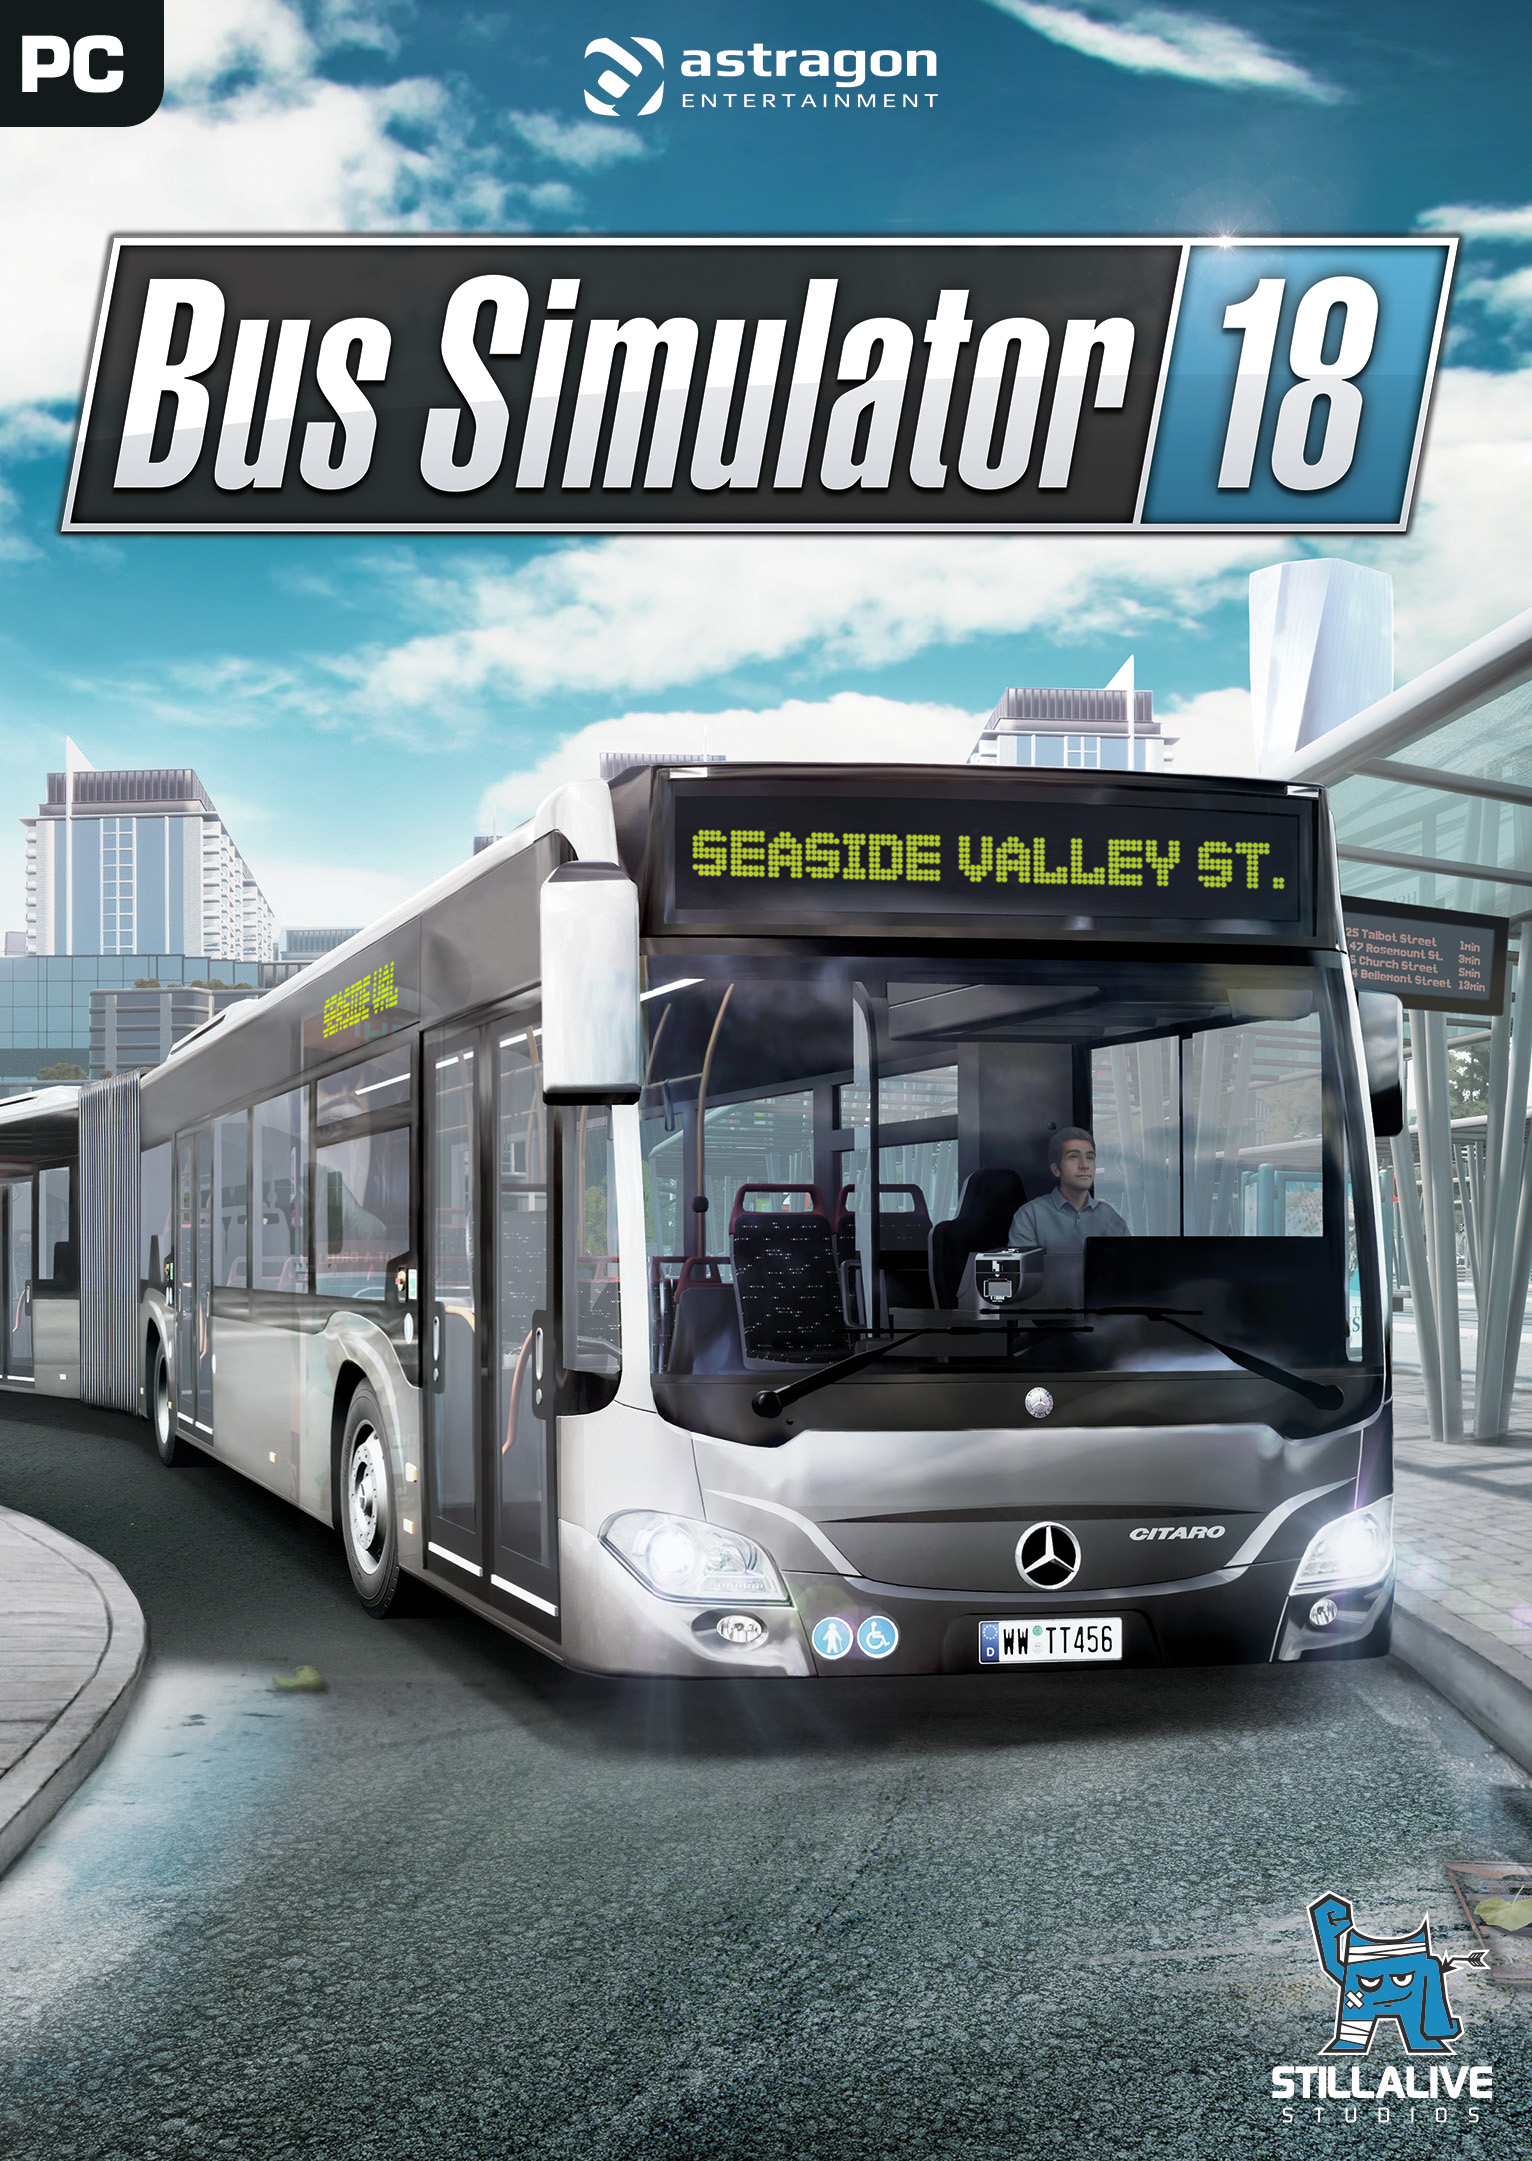 Bus Simulator 18 [PC Code - Steam]